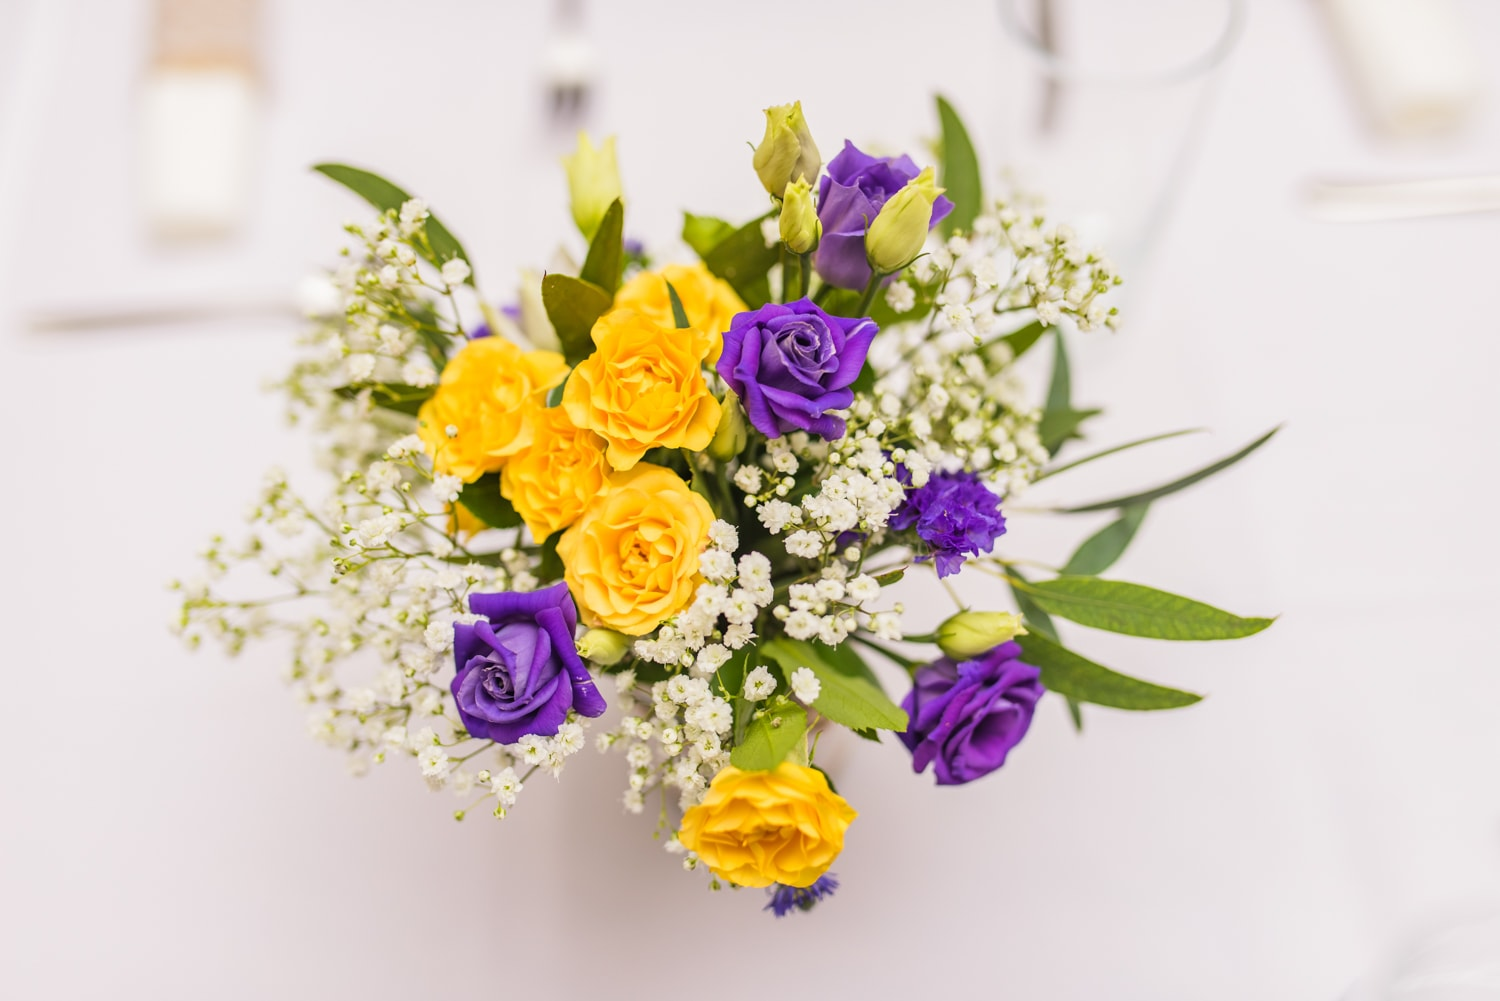 100-pretty-wedding-flowers_1.jpg